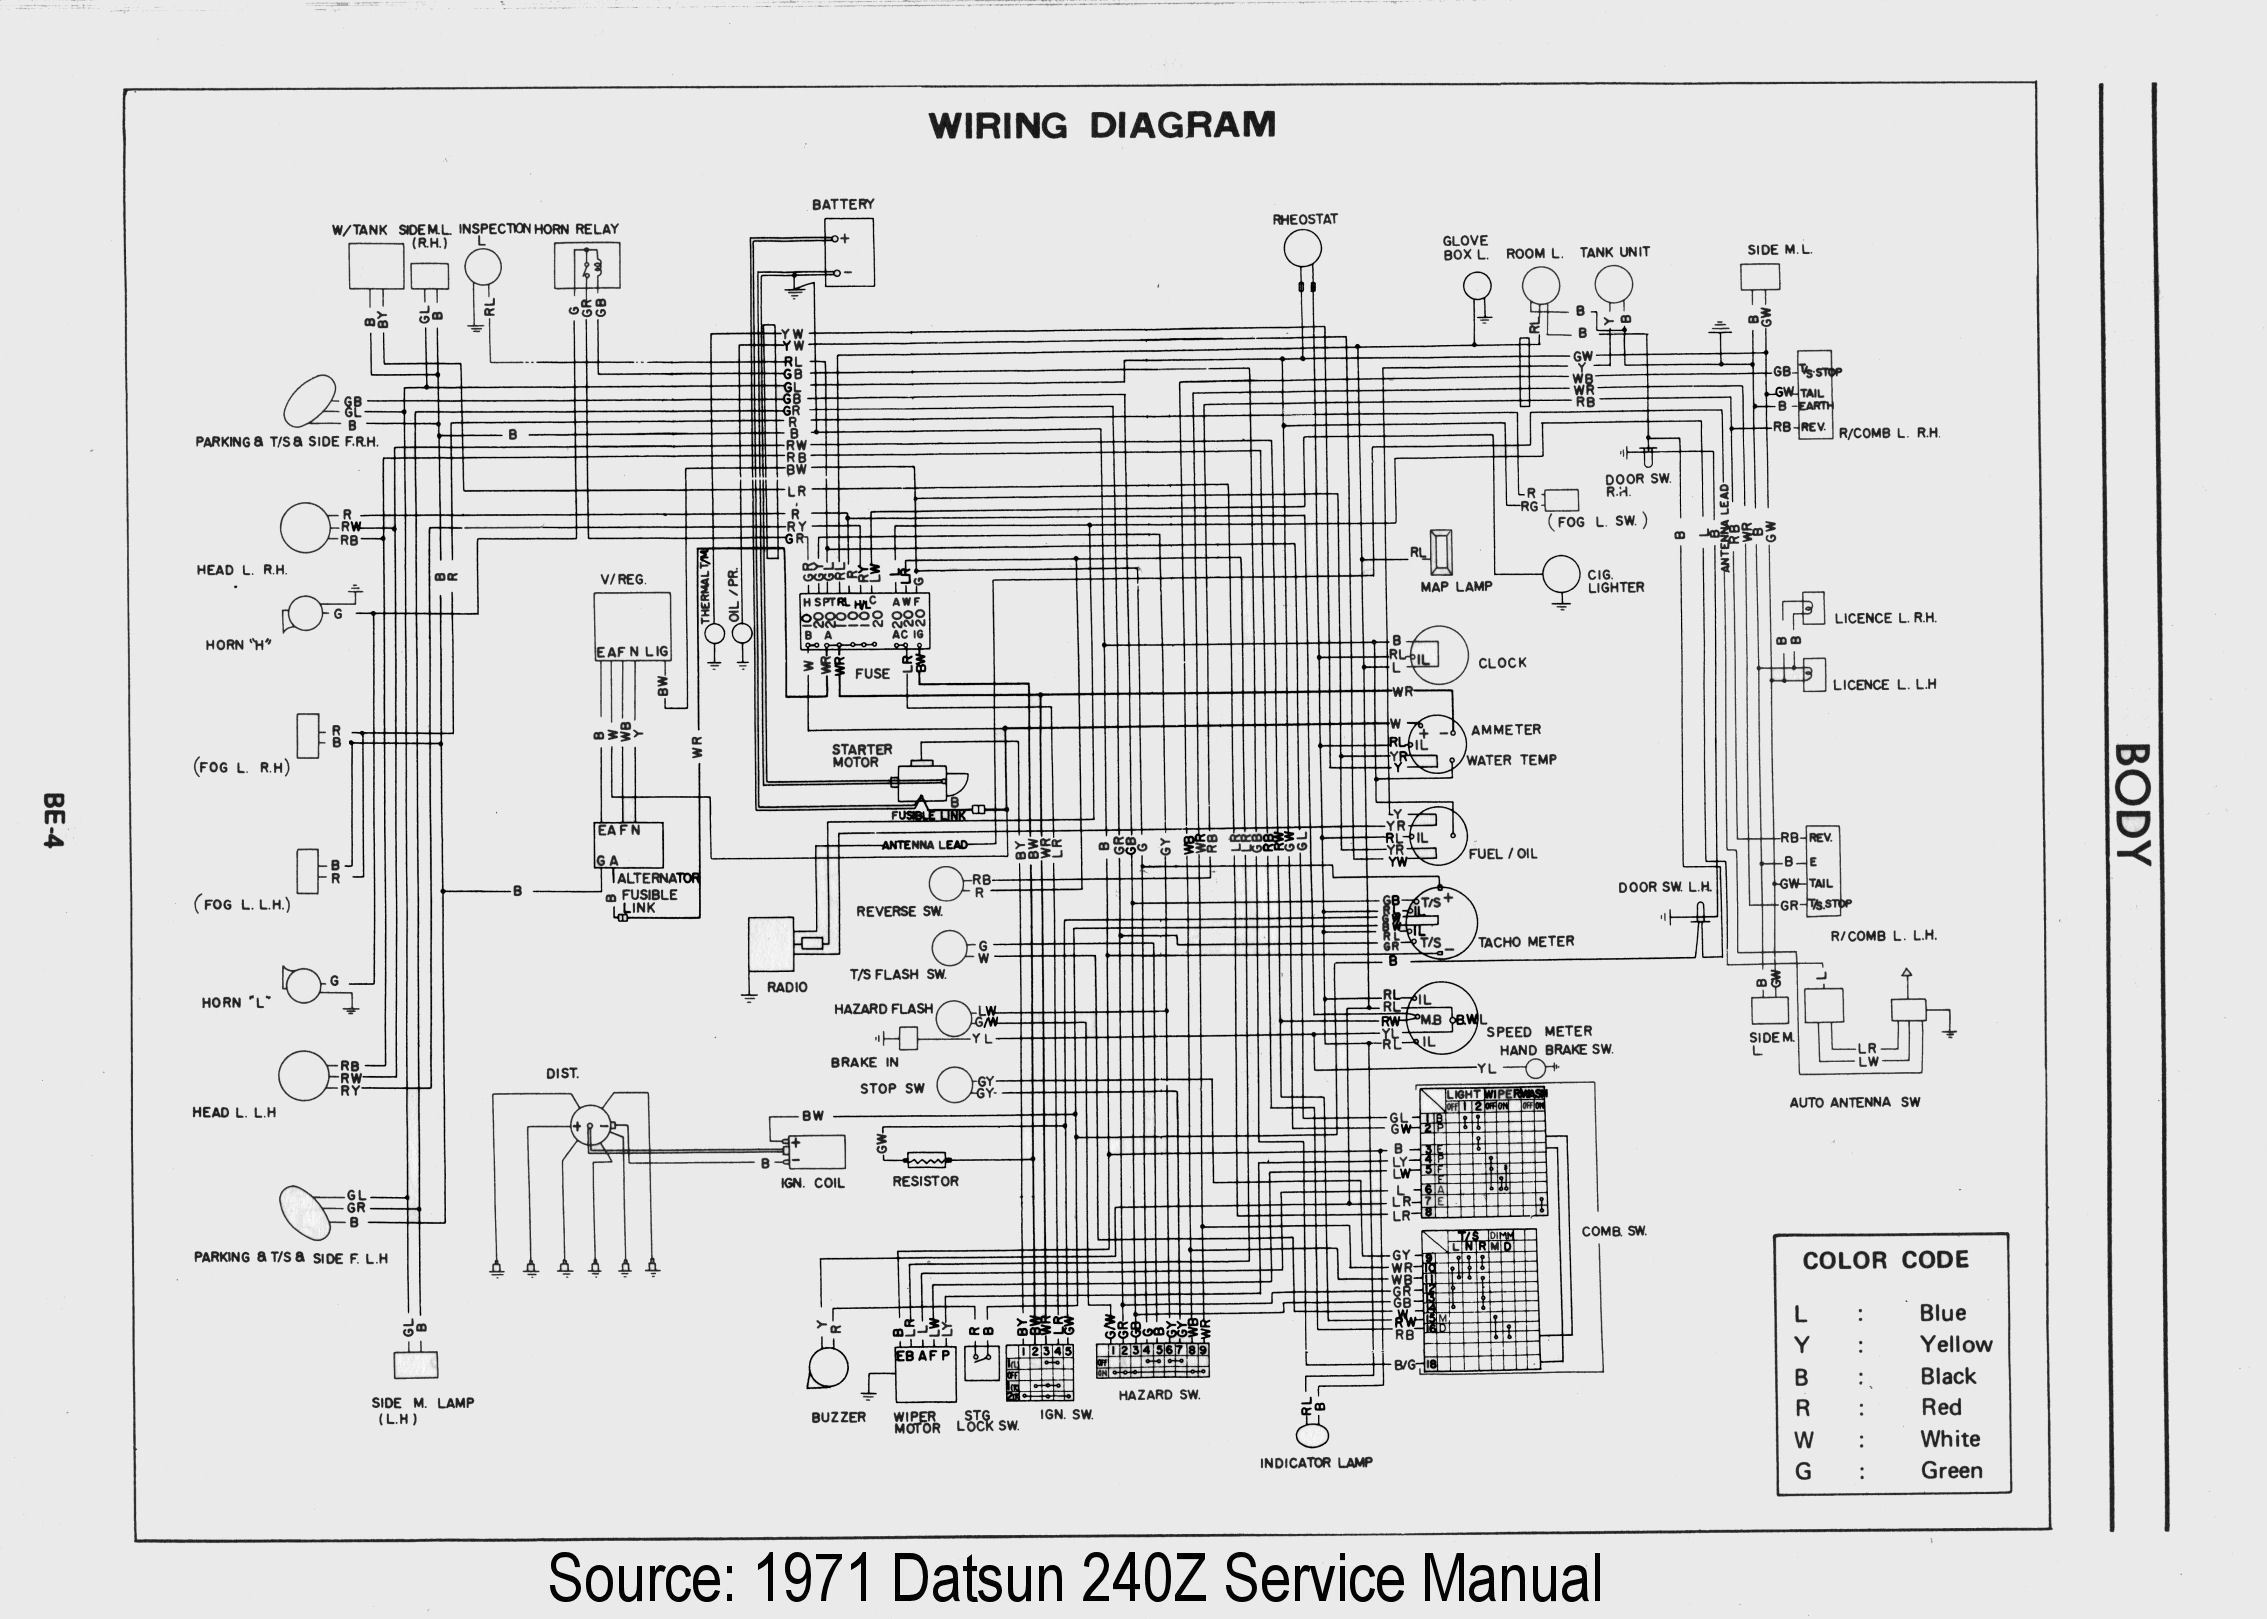 Pleasing 260Z Wiring Diagram Wiring Diagram Tutorial Wiring Digital Resources Tziciprontobusorg